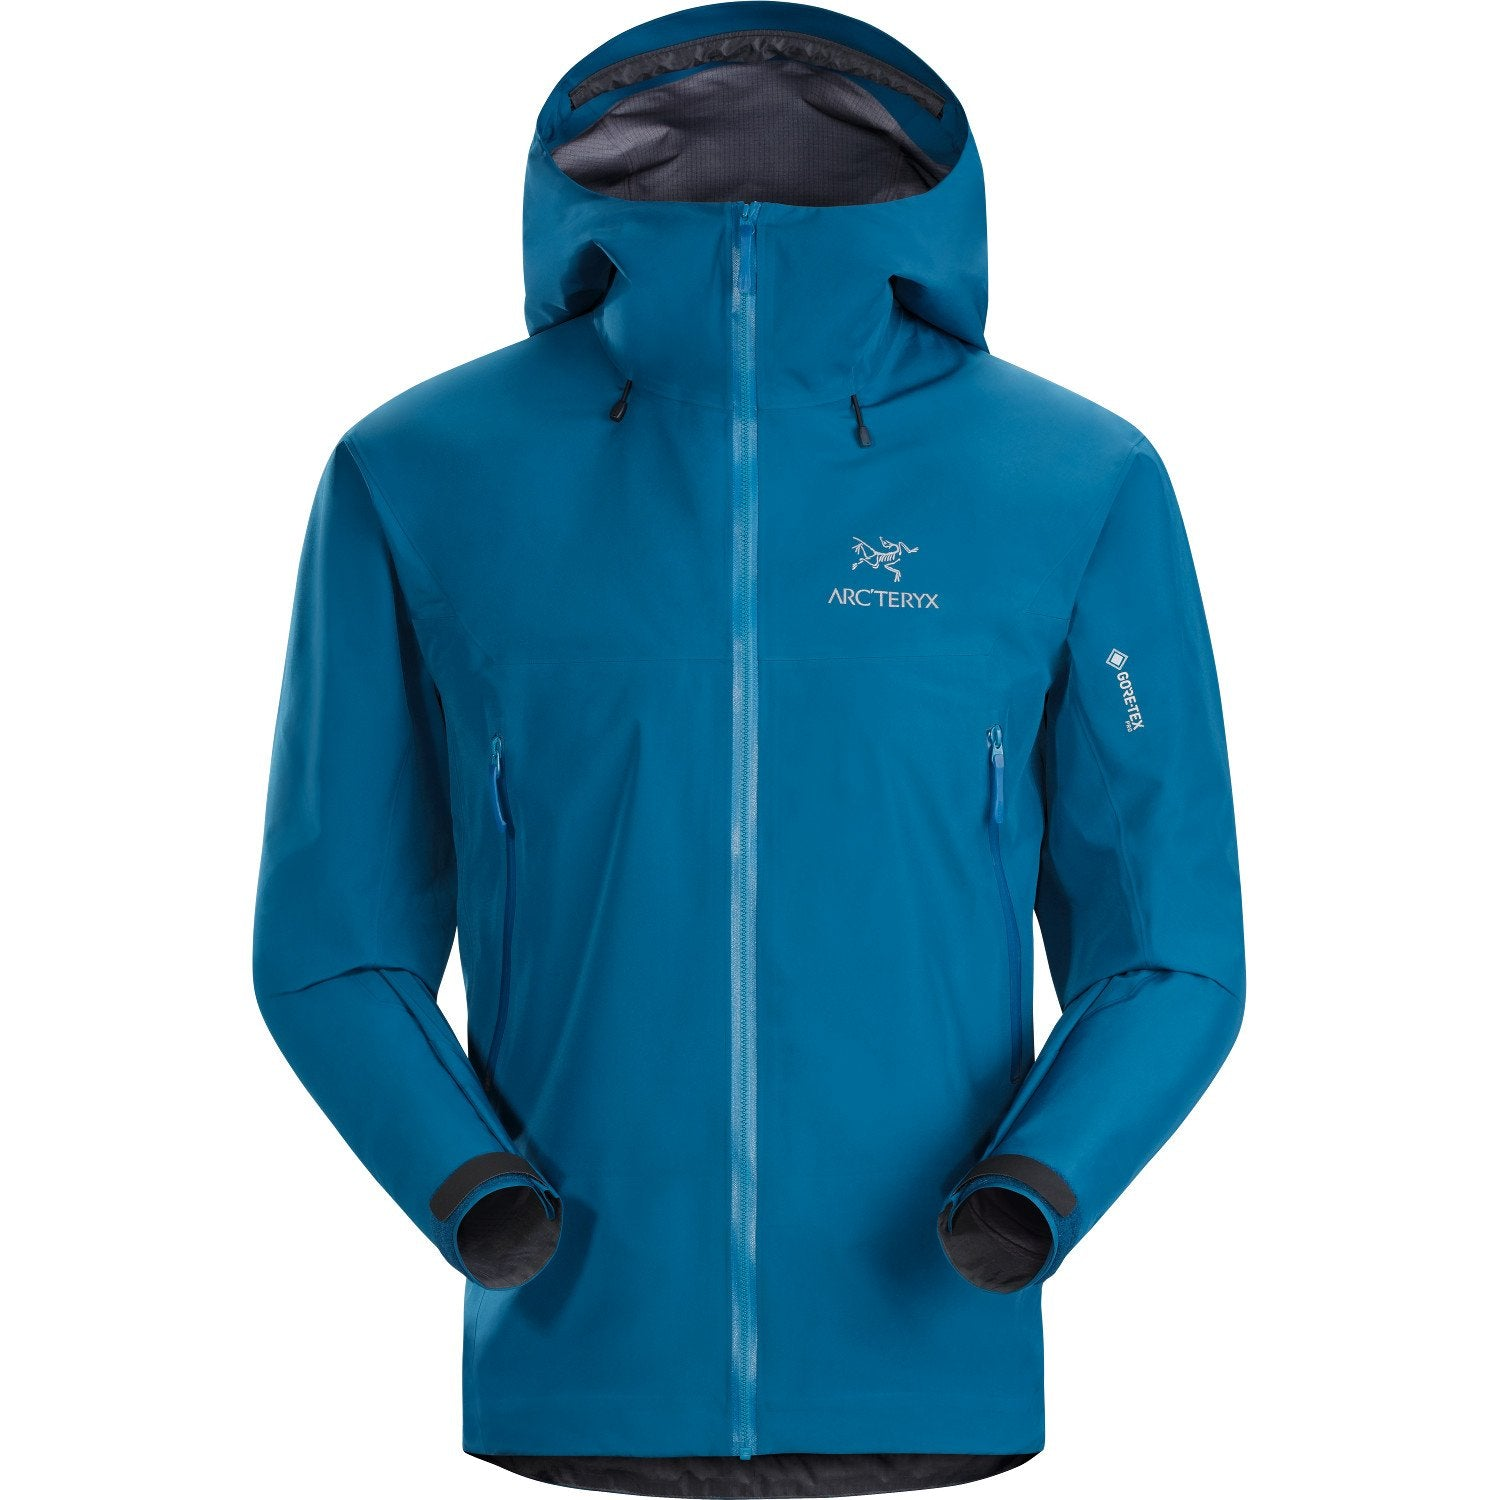 ArcTeryx Beta LT Jacket in Blue colour, showing hood design and Arc'Teryx Logo